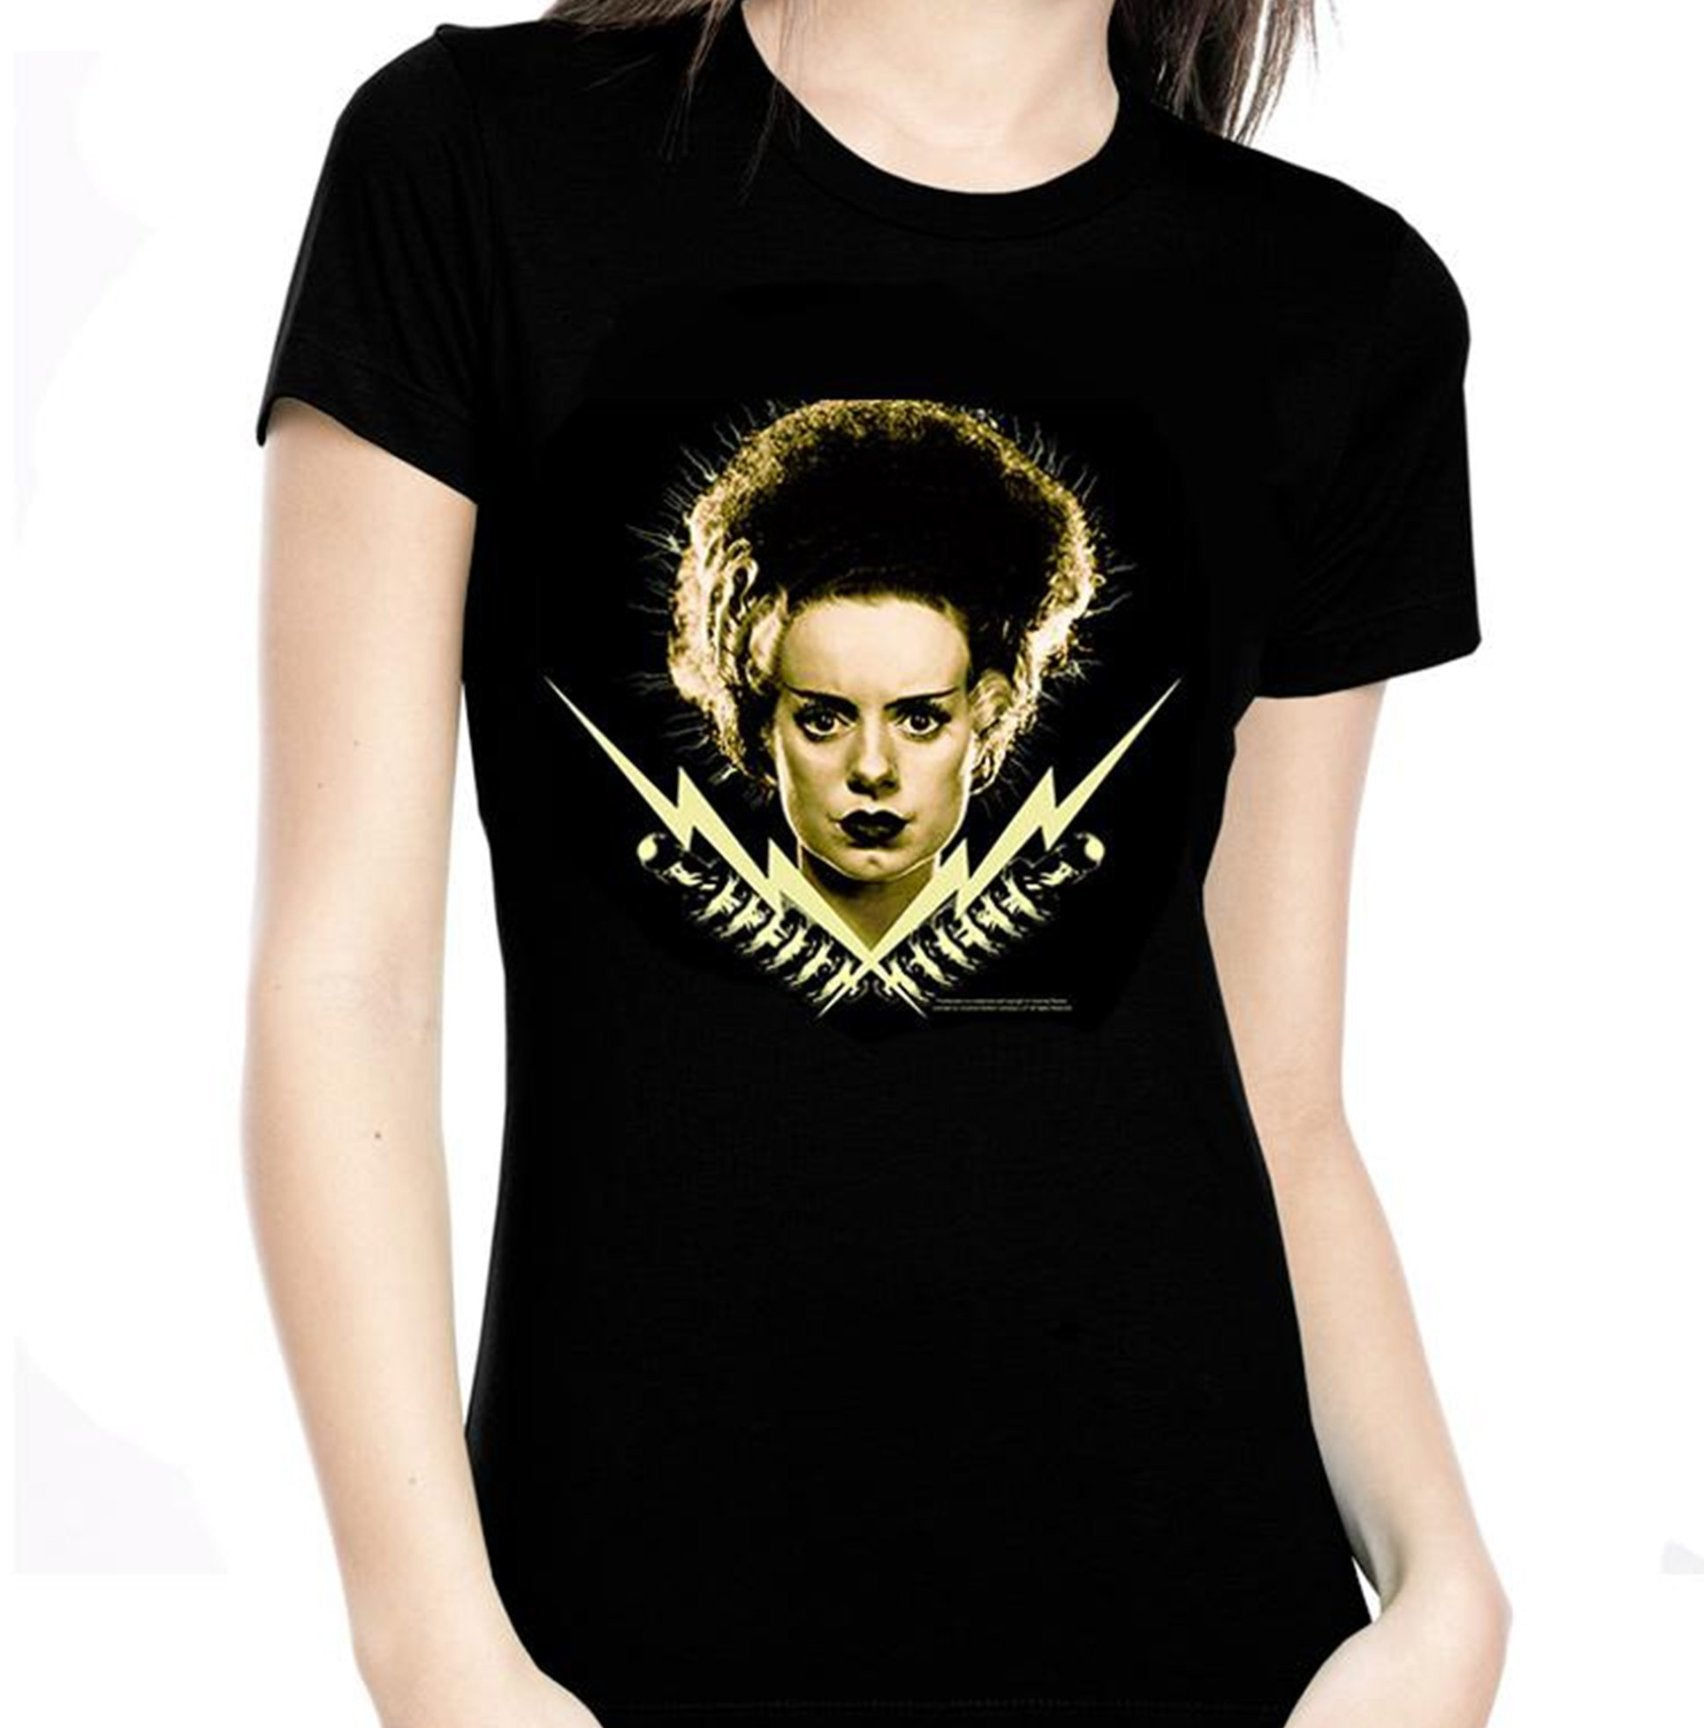 The BRIDE OF FRANKENSTEIN BOLTS Tee - GLOWS IN THE DARK!